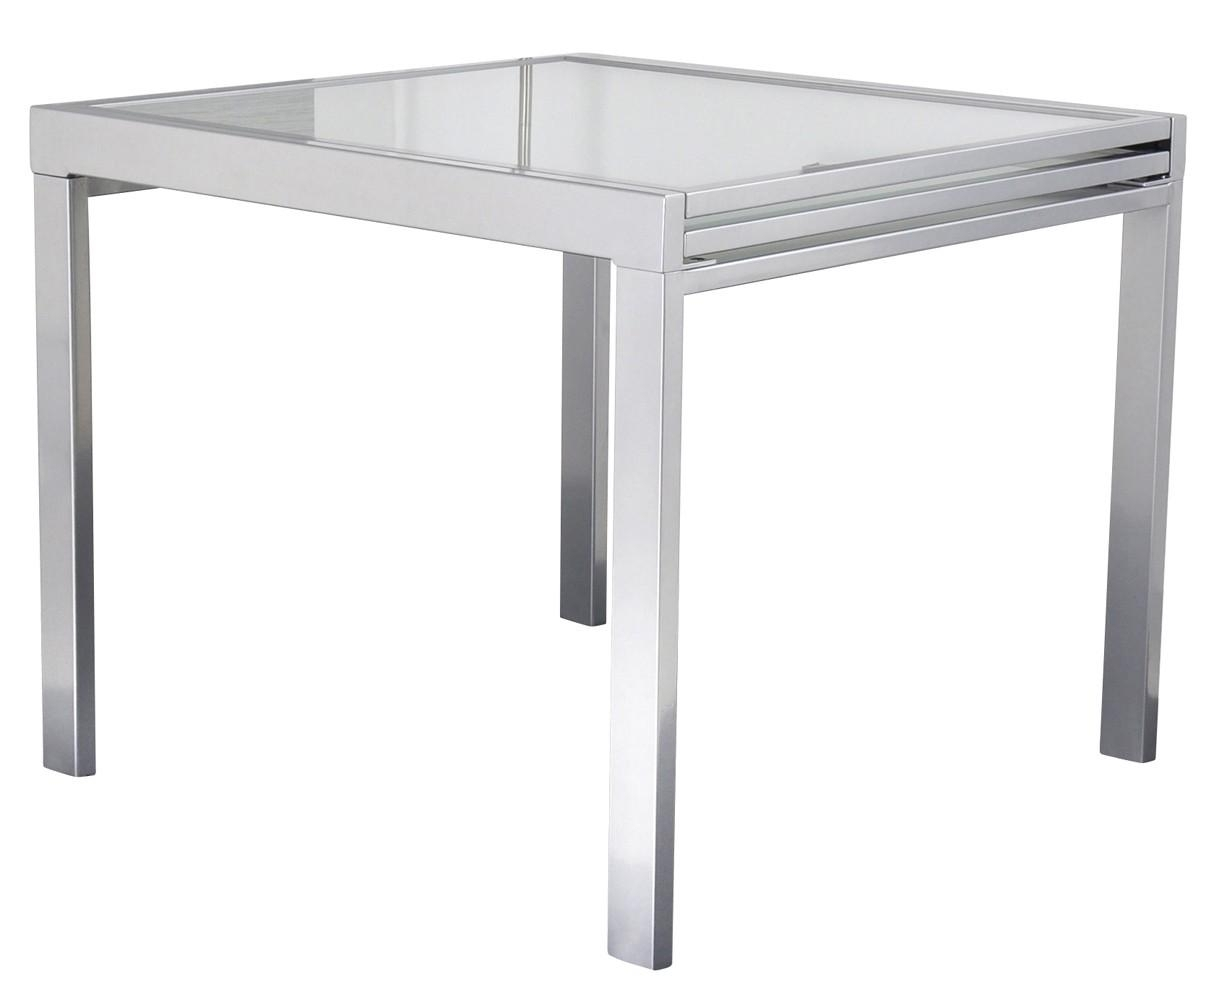 Les tendances table carr e extensible grise for Table de sejour carree